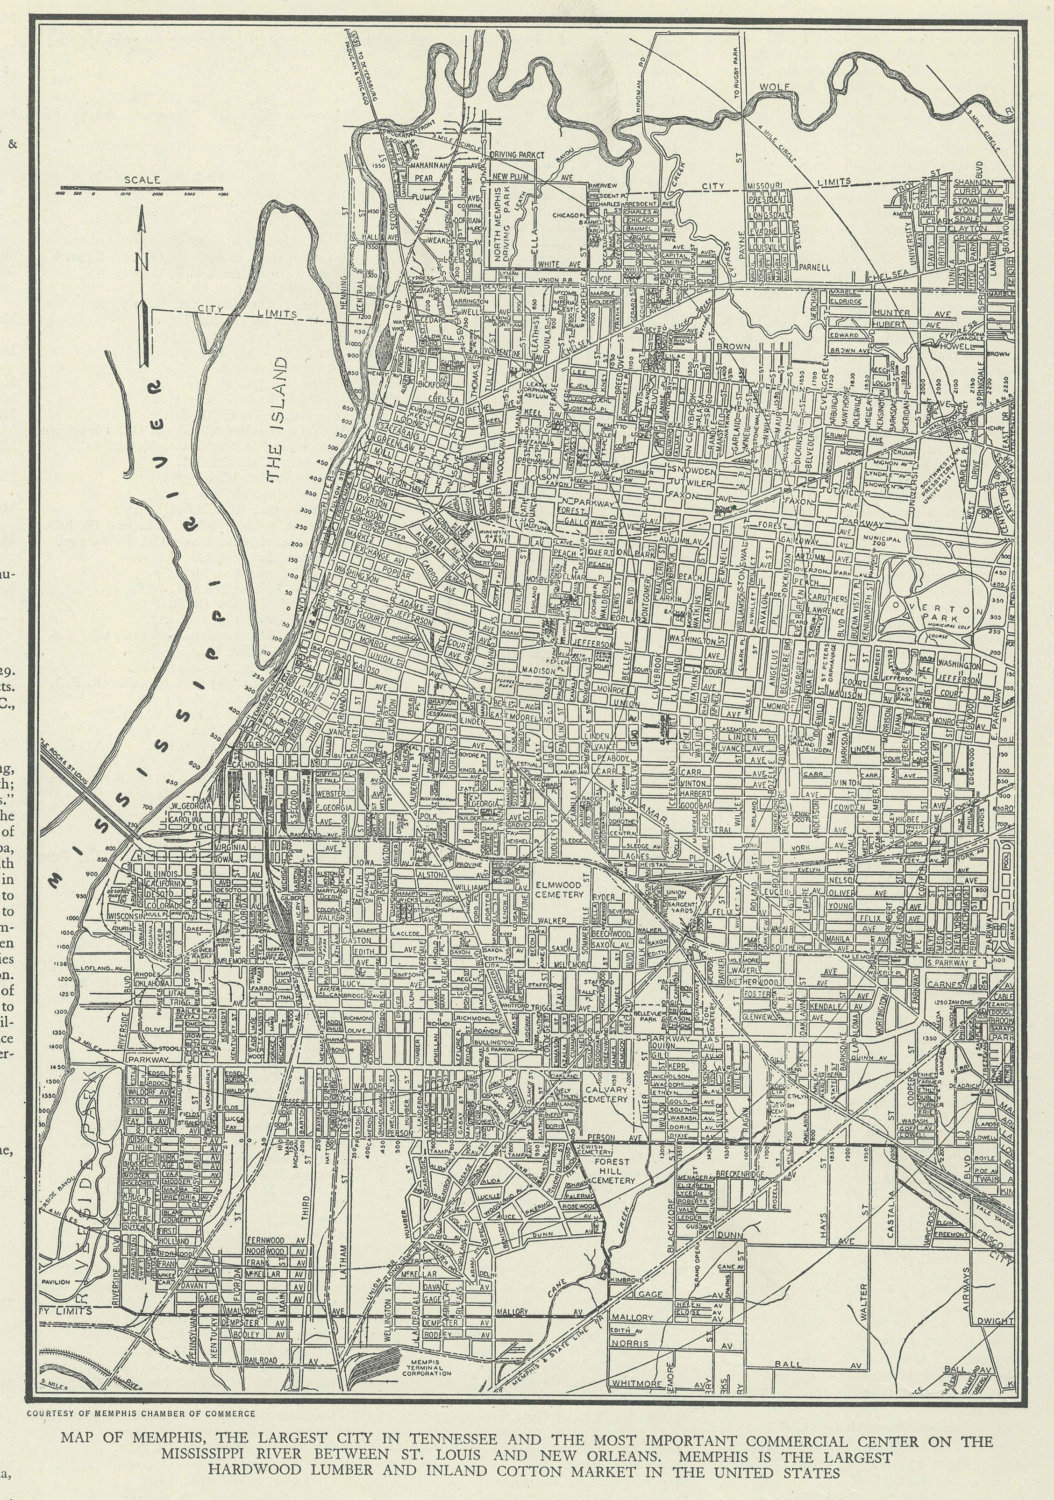 Vintage Map Of Memphis Tennessee From Original - Memphis tn on us map